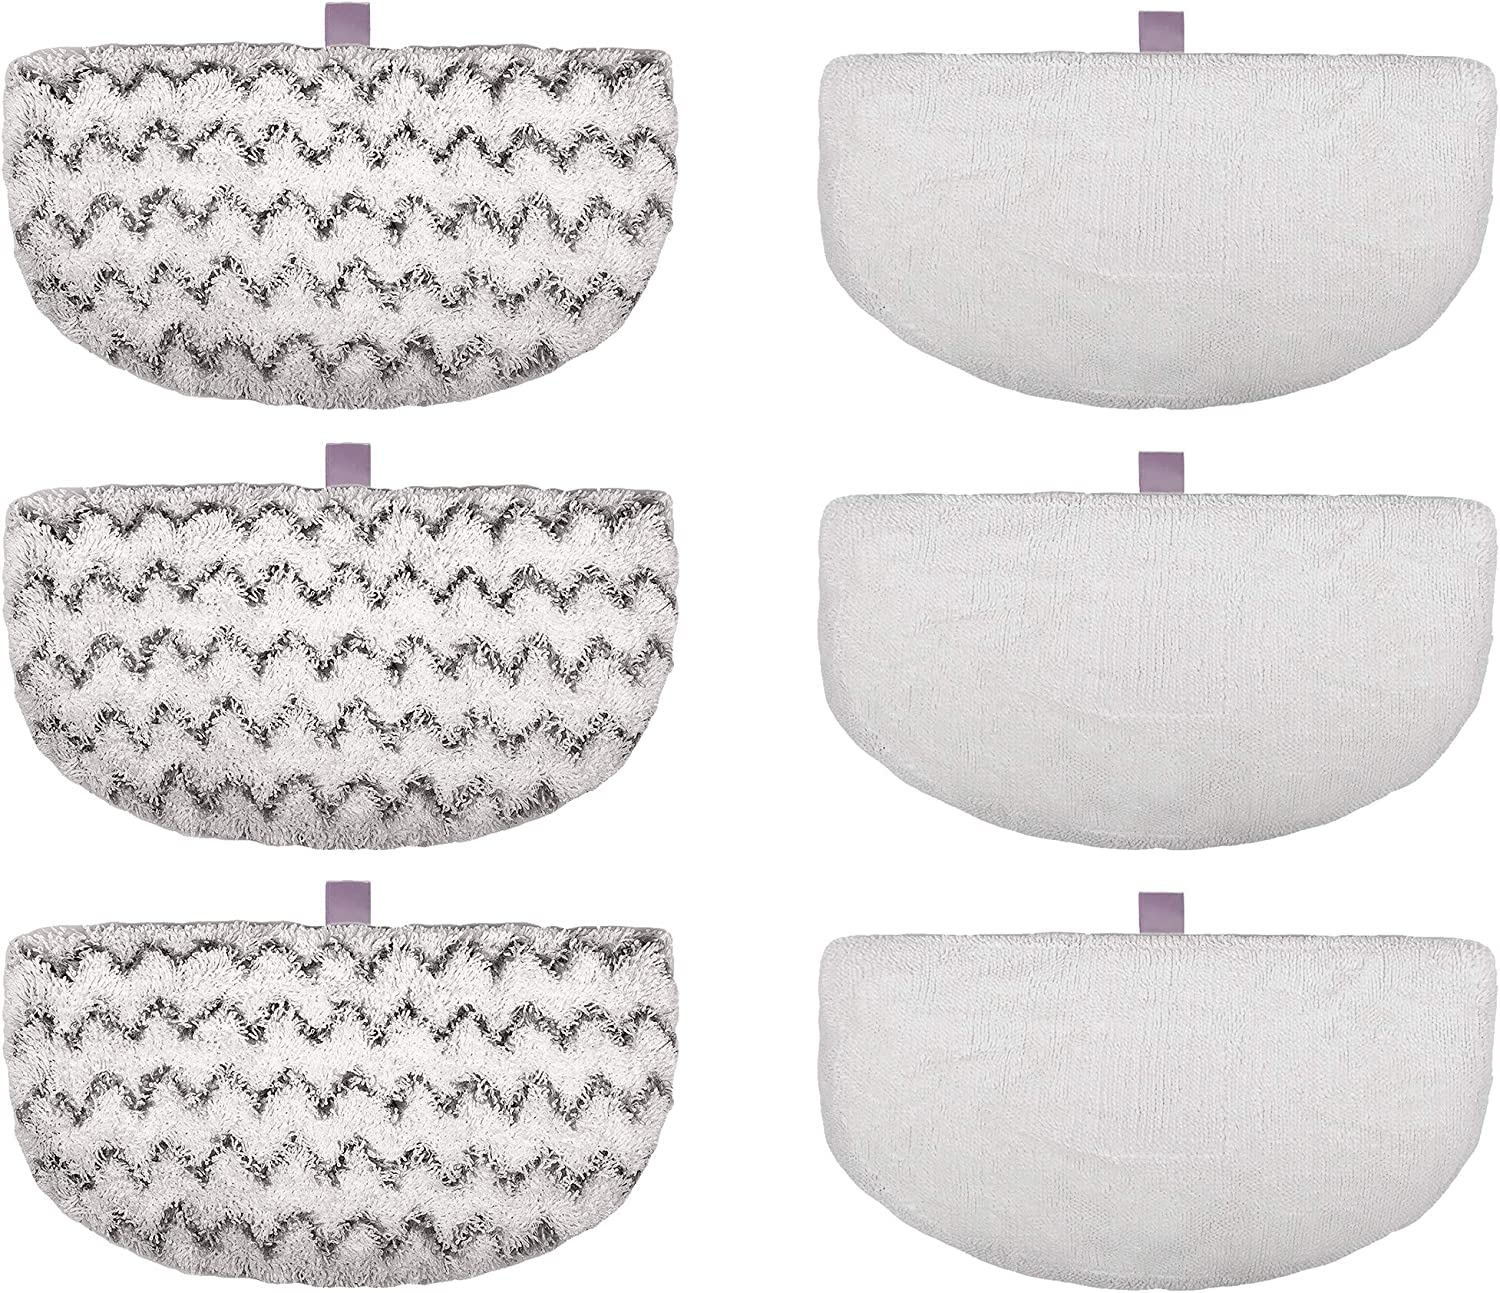 F Flammi 4-6 Pack Bissell Steam Mop Pads Replacement for Powerfresh Steam Mop 1940 1440 1544 Series, Model 19402 19404 19408 1940A 1940Q 1940T 1940W (6 Pack)